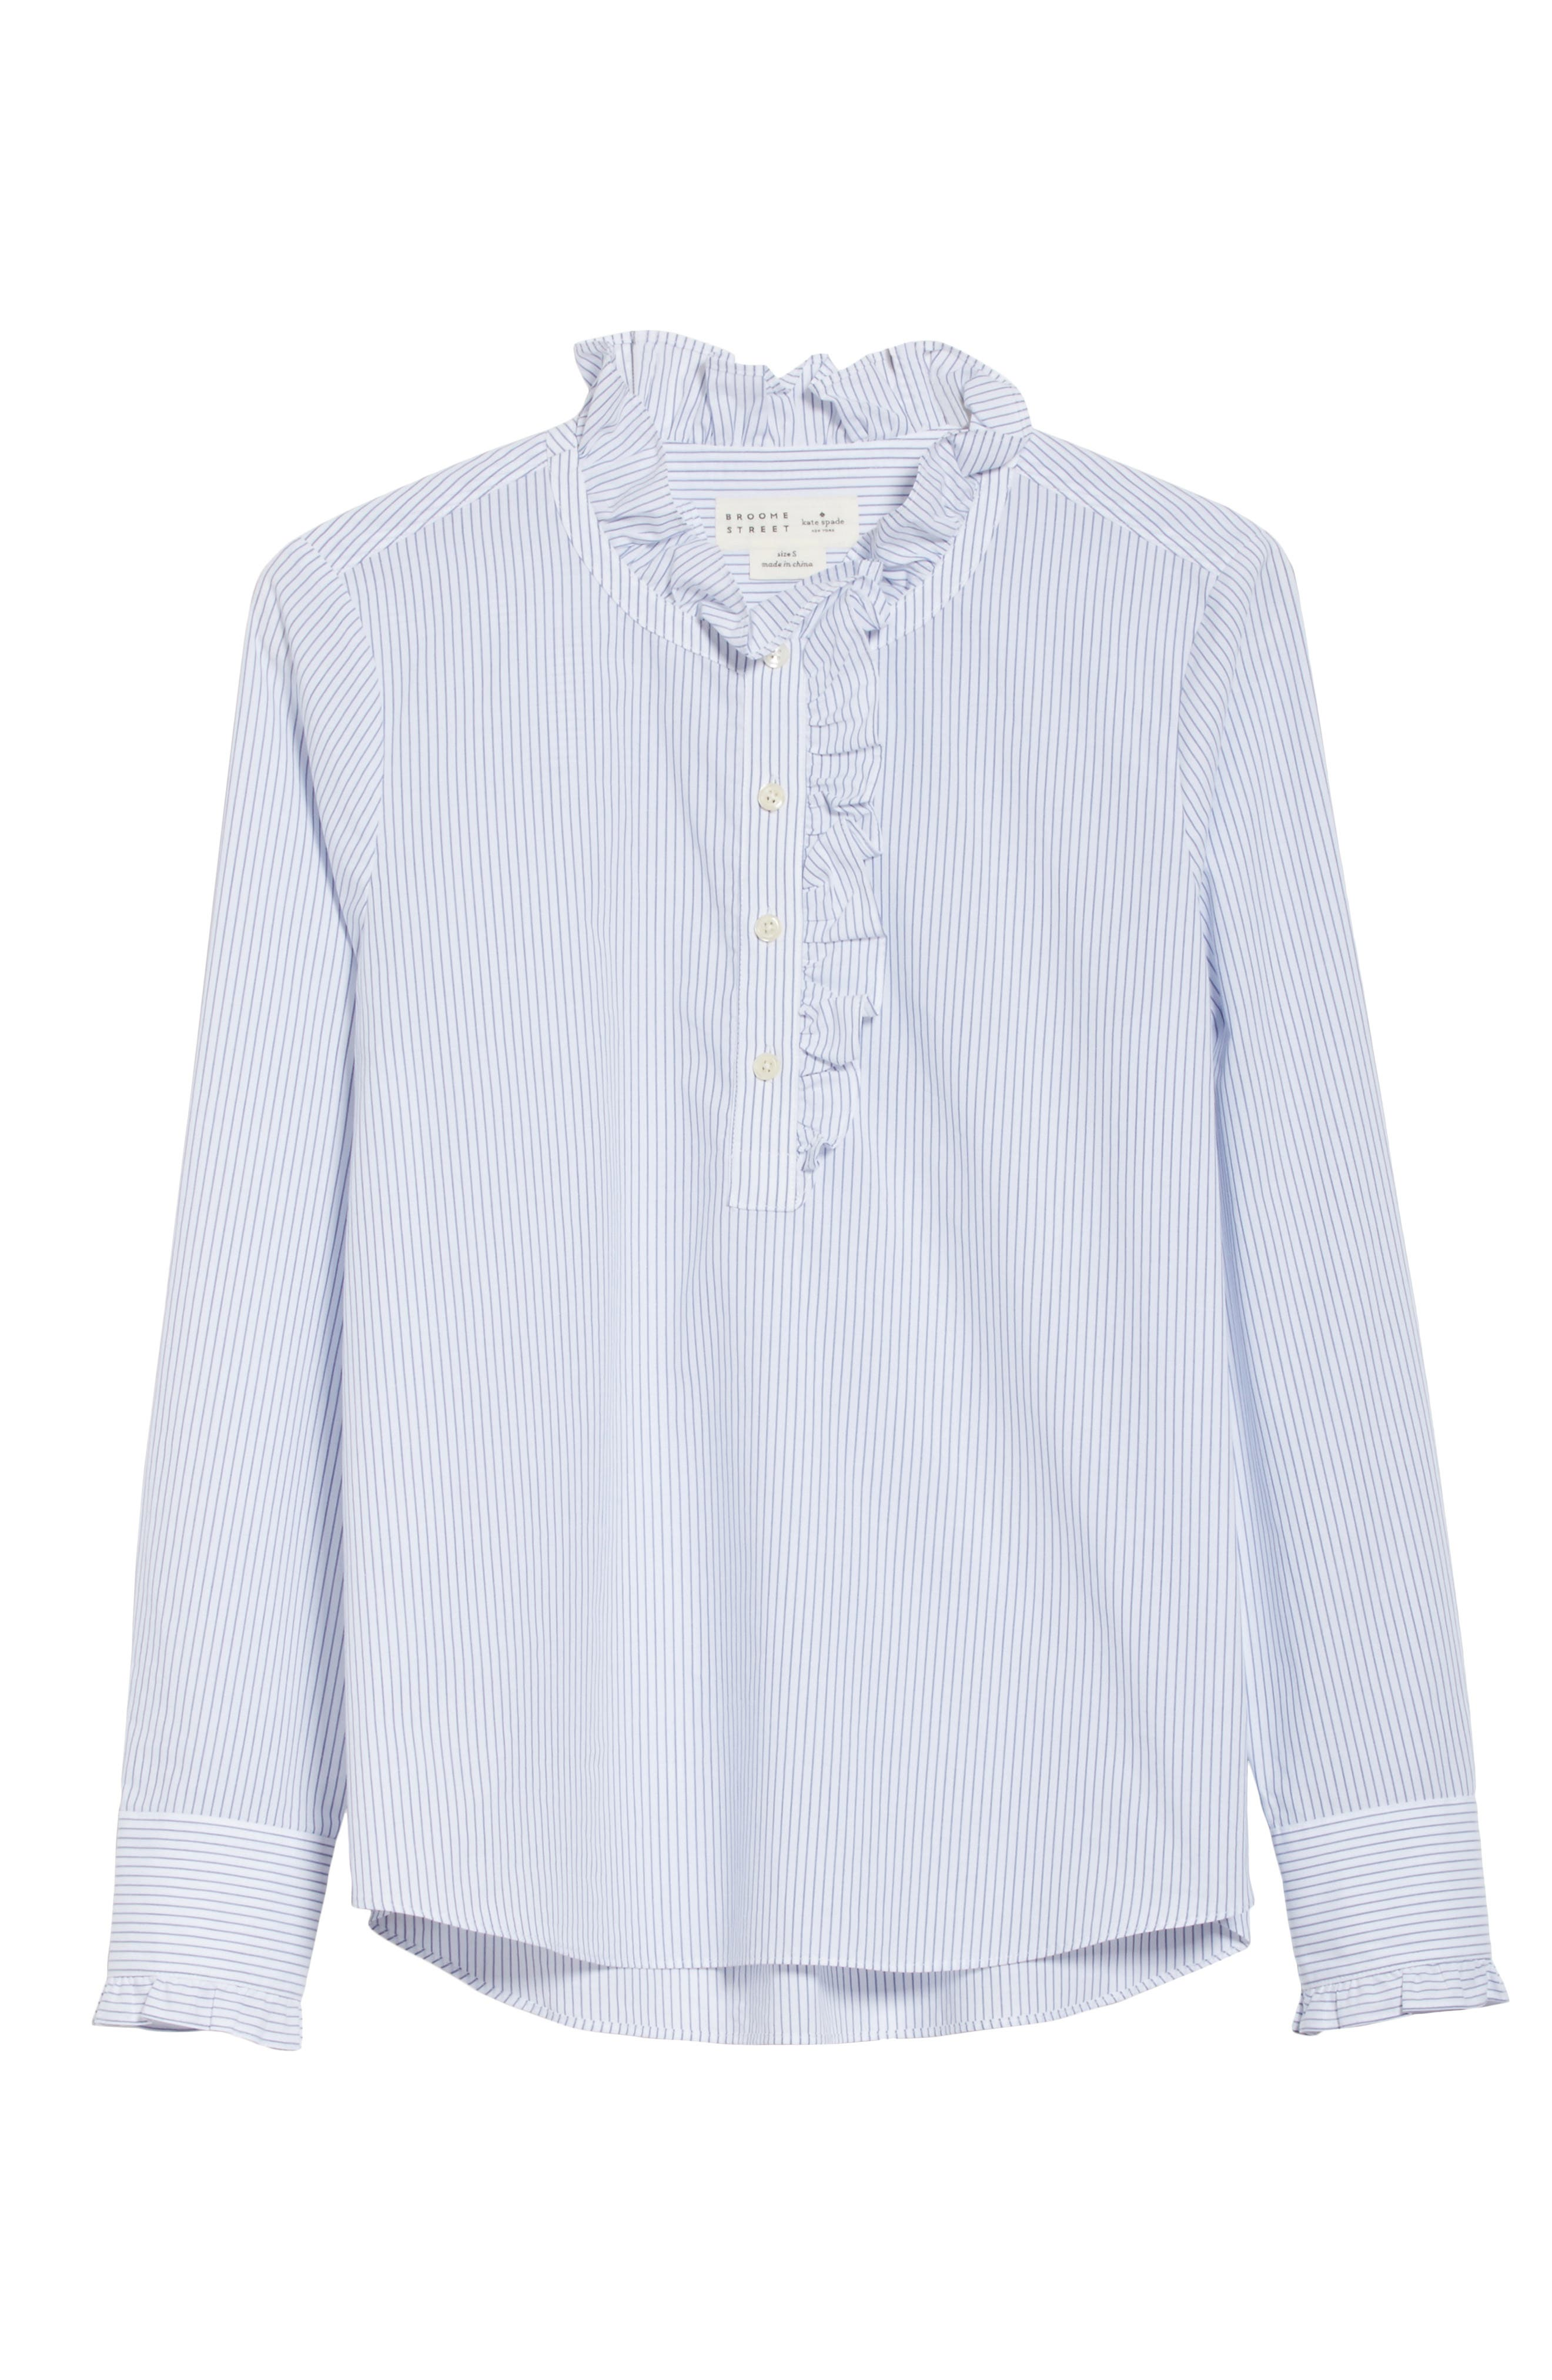 stripe ruffle neck poplin shirt,                             Alternate thumbnail 7, color,                             Fresh White/ Deep Ultramarine